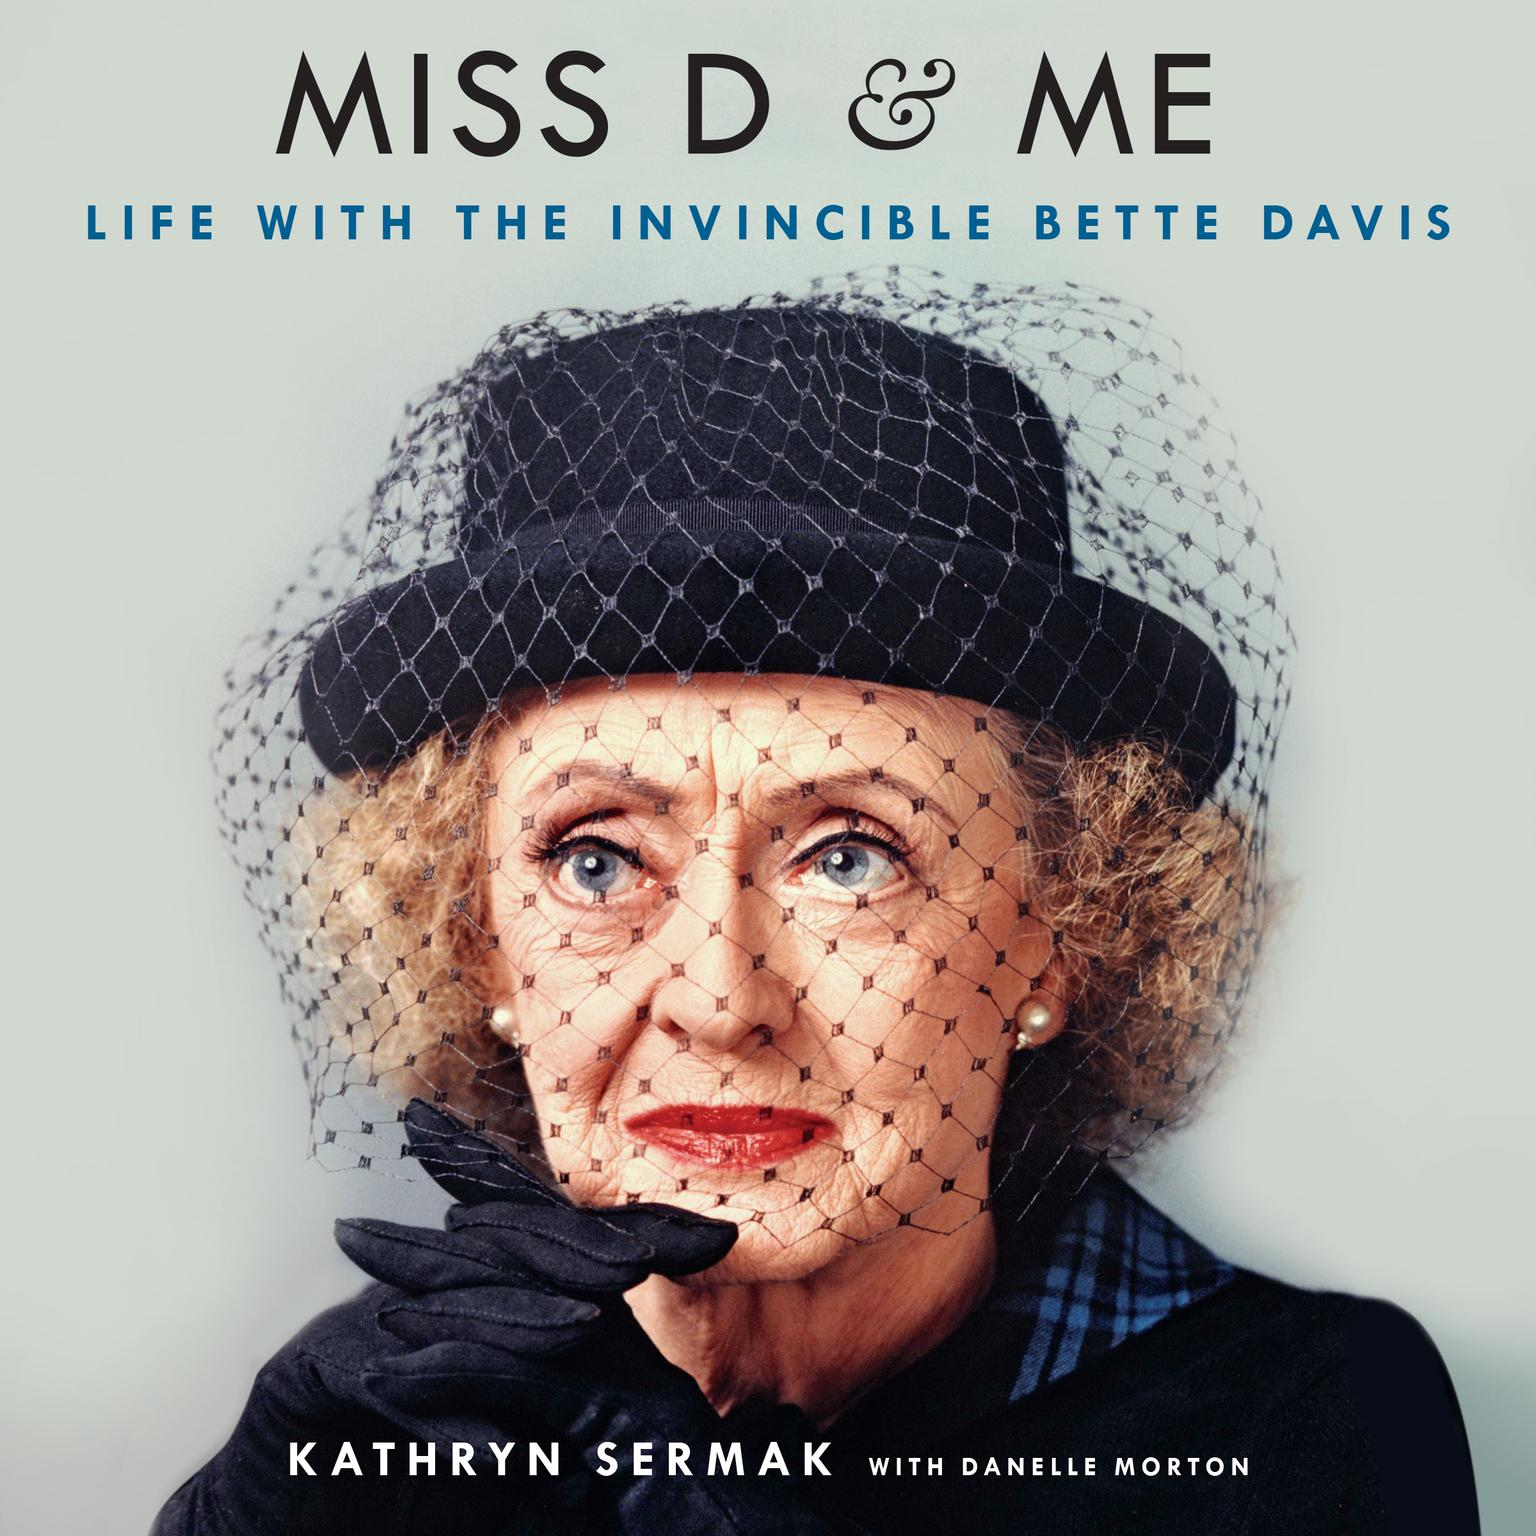 Miss D and Me: Life with the Invincible Bette Davis Audiobook, by Kathryn Sermak